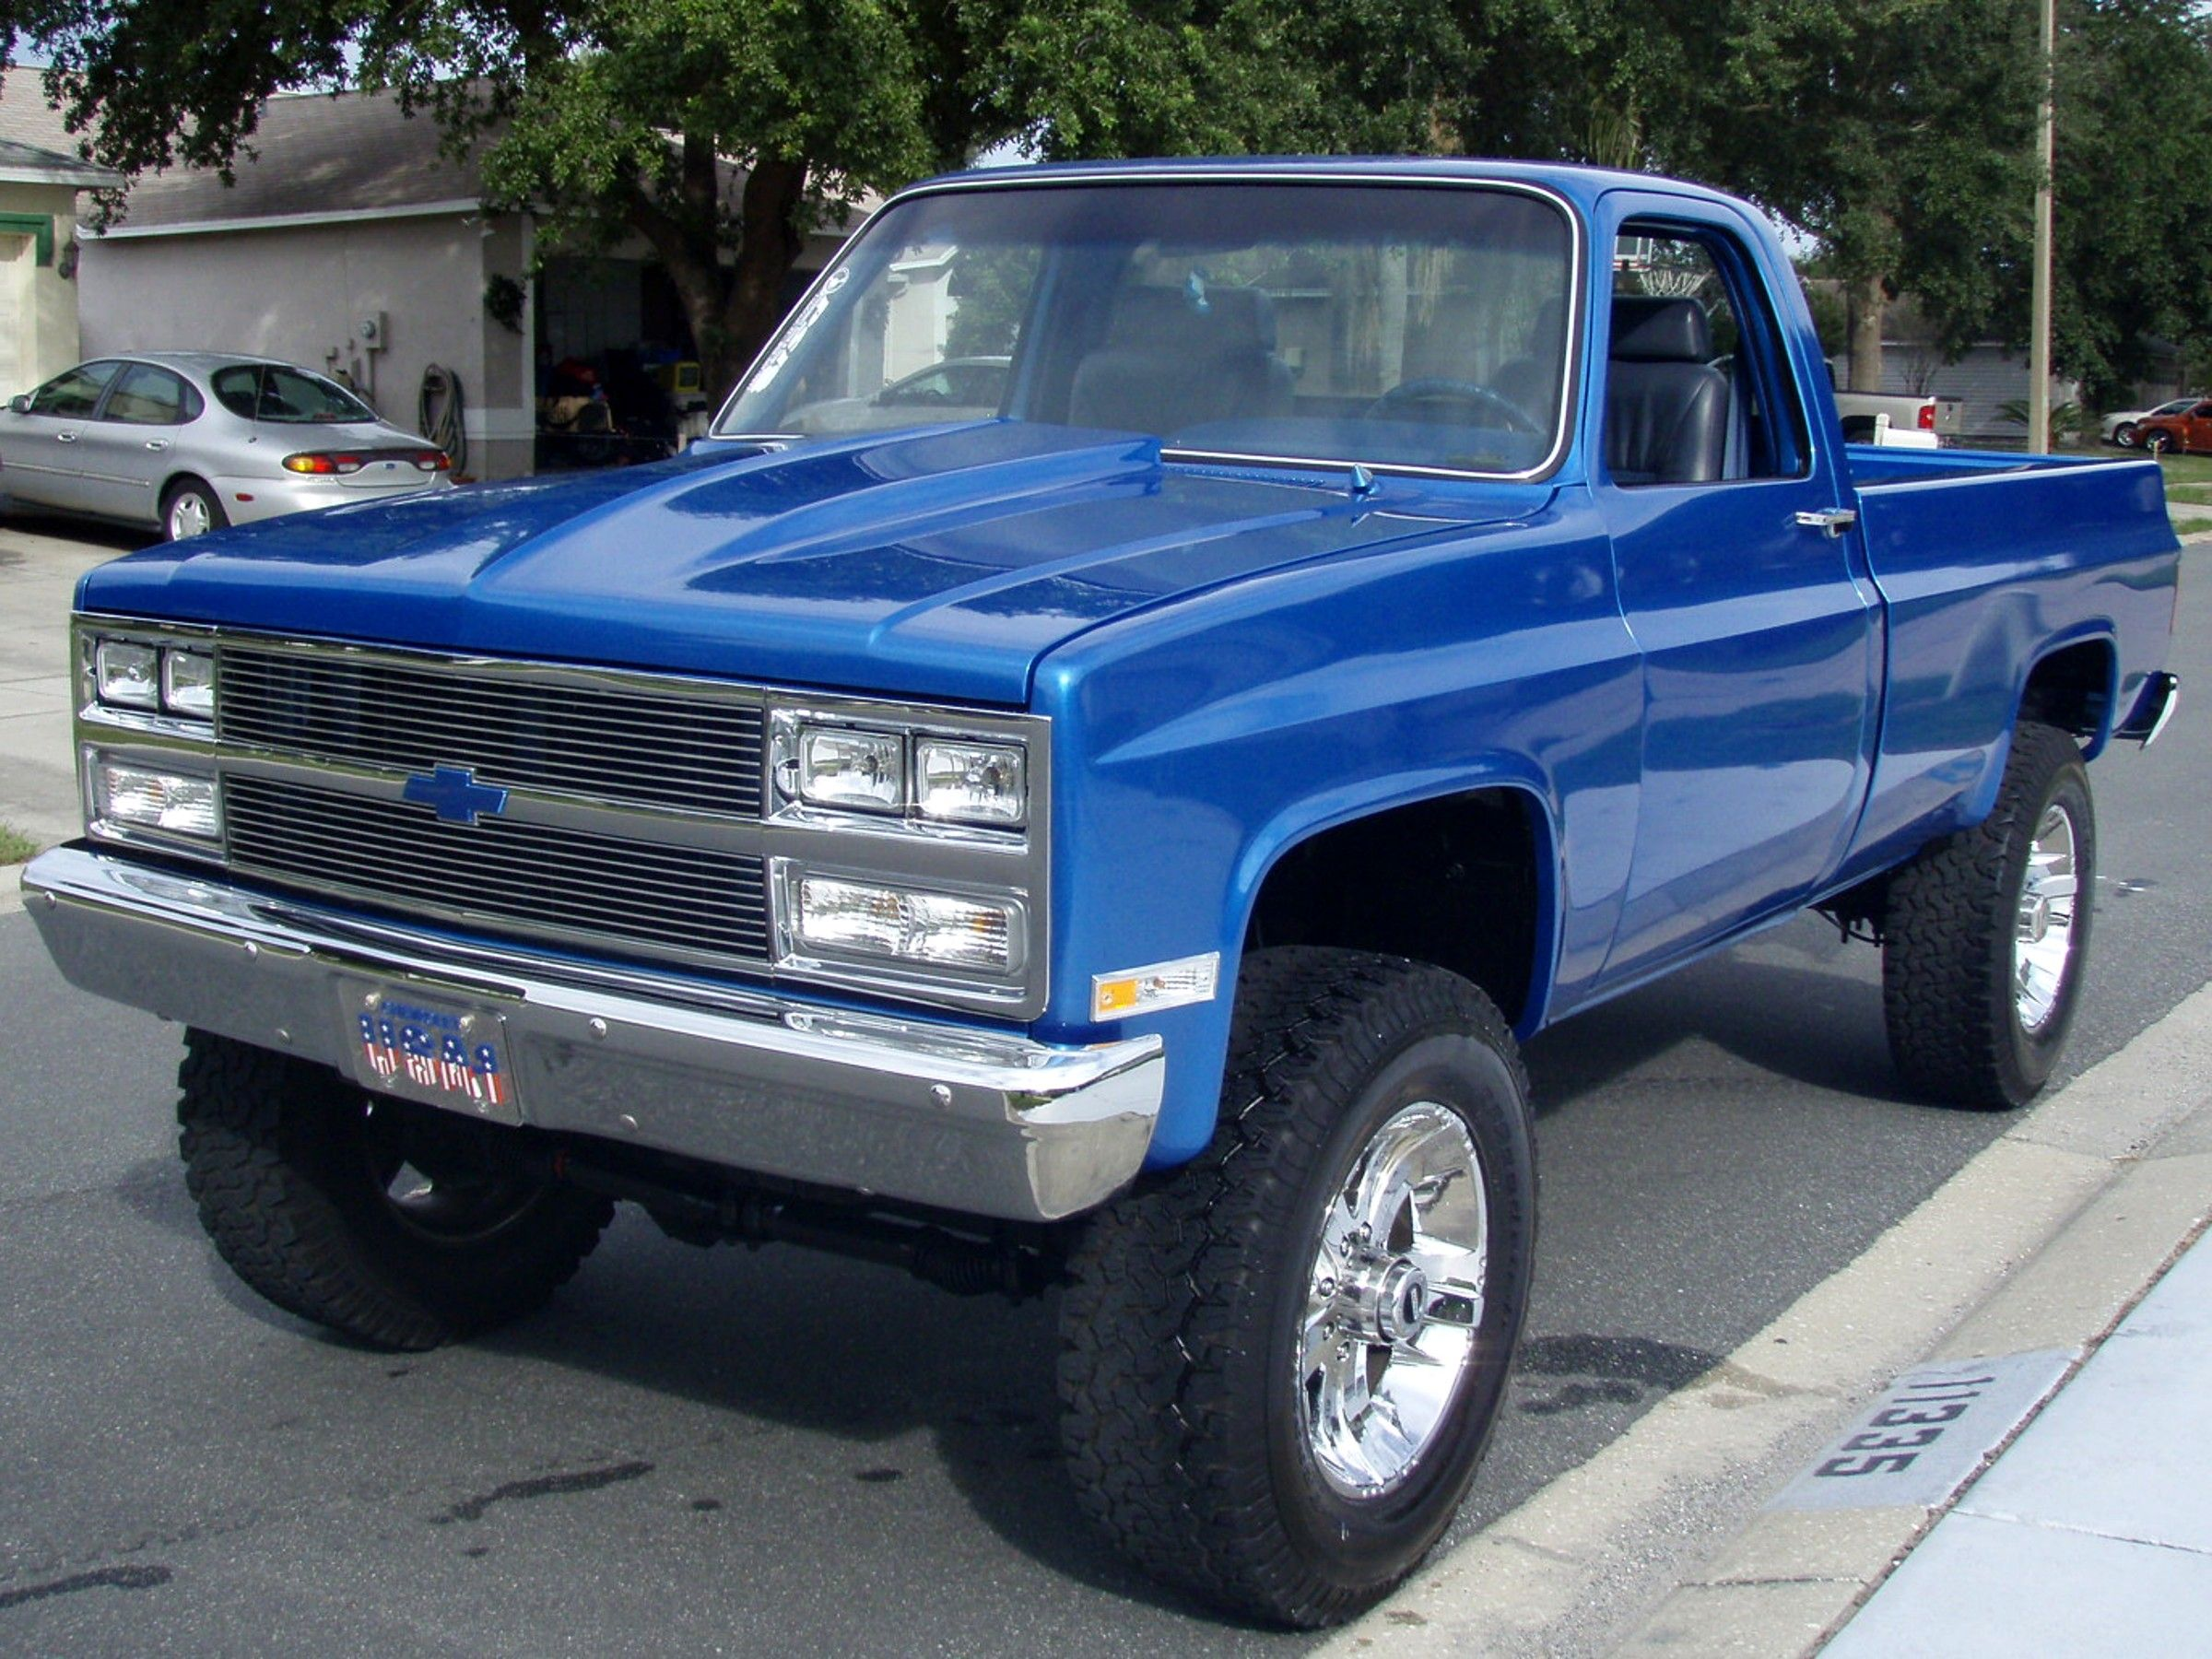 1984 Chevy Truck Maintenance Restoration Of Old Vintage Vehicles